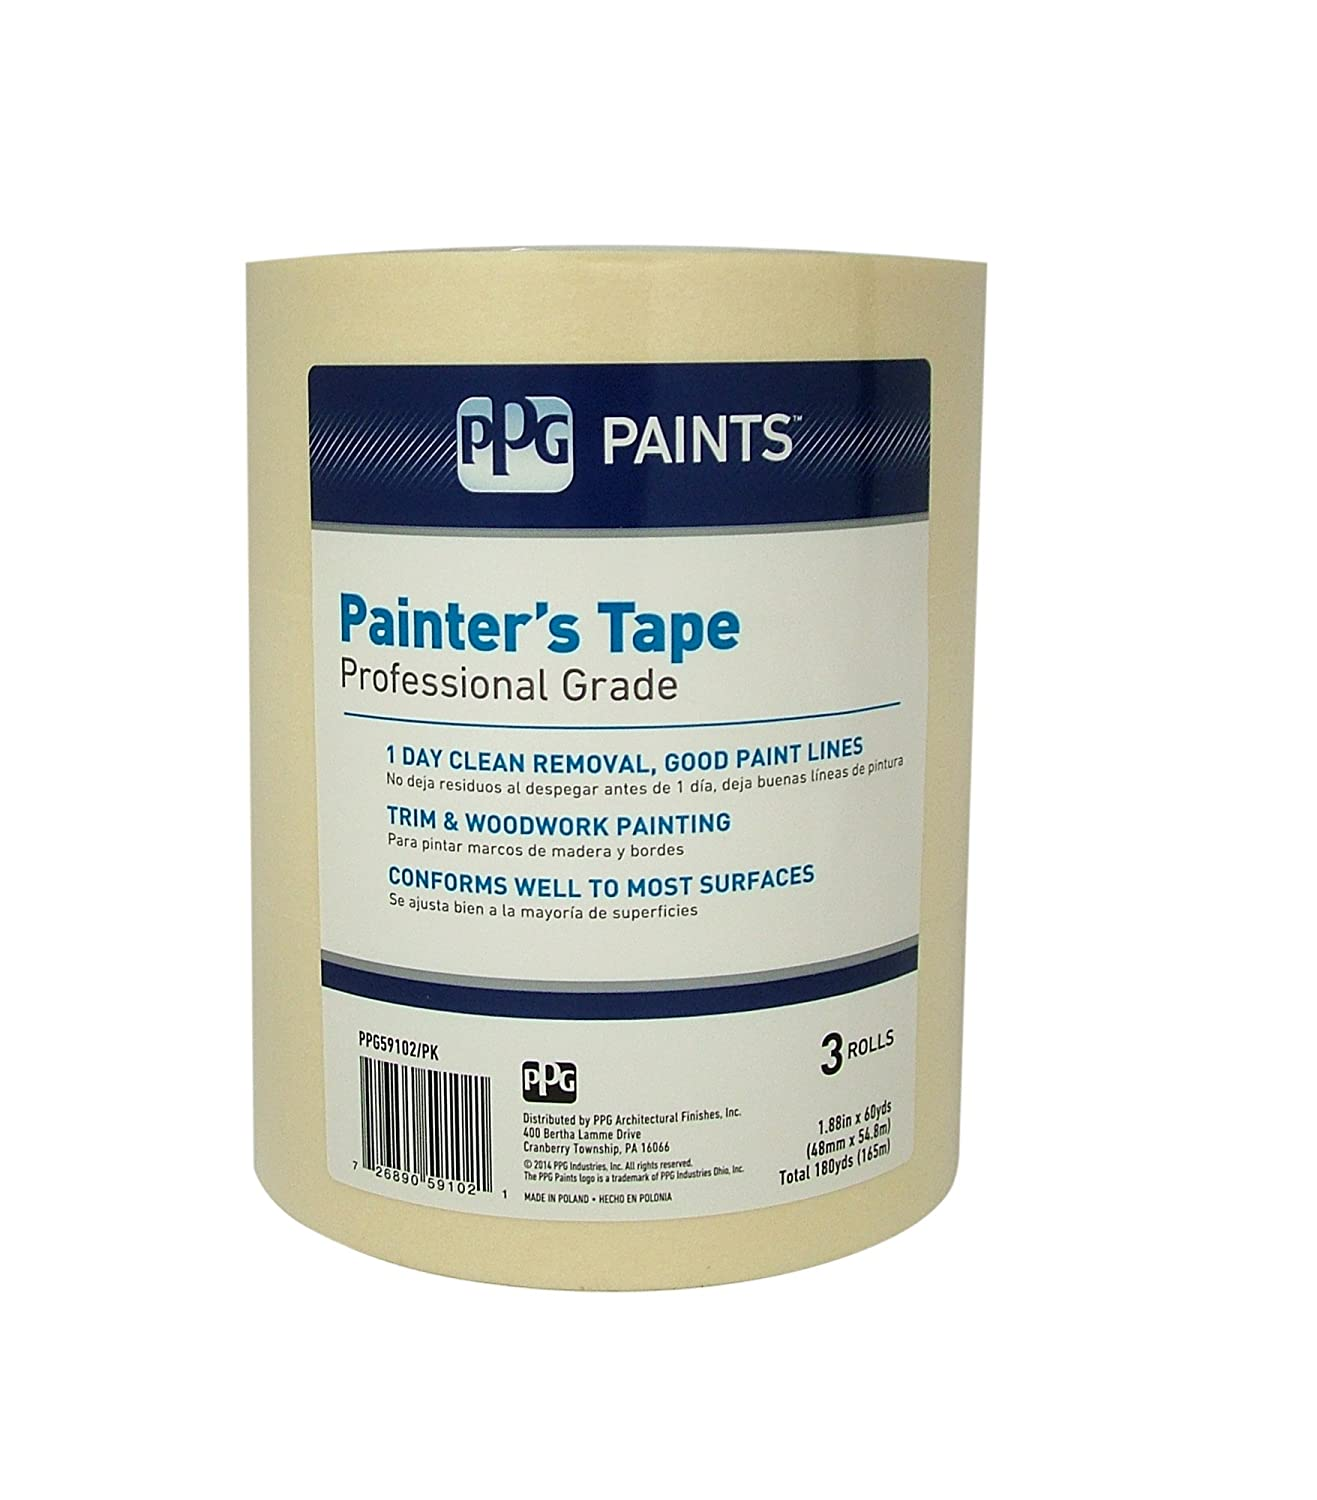 2 General Purpose Masking Tape Multi-Purpose Tape for a Variety of Uses Including Painting